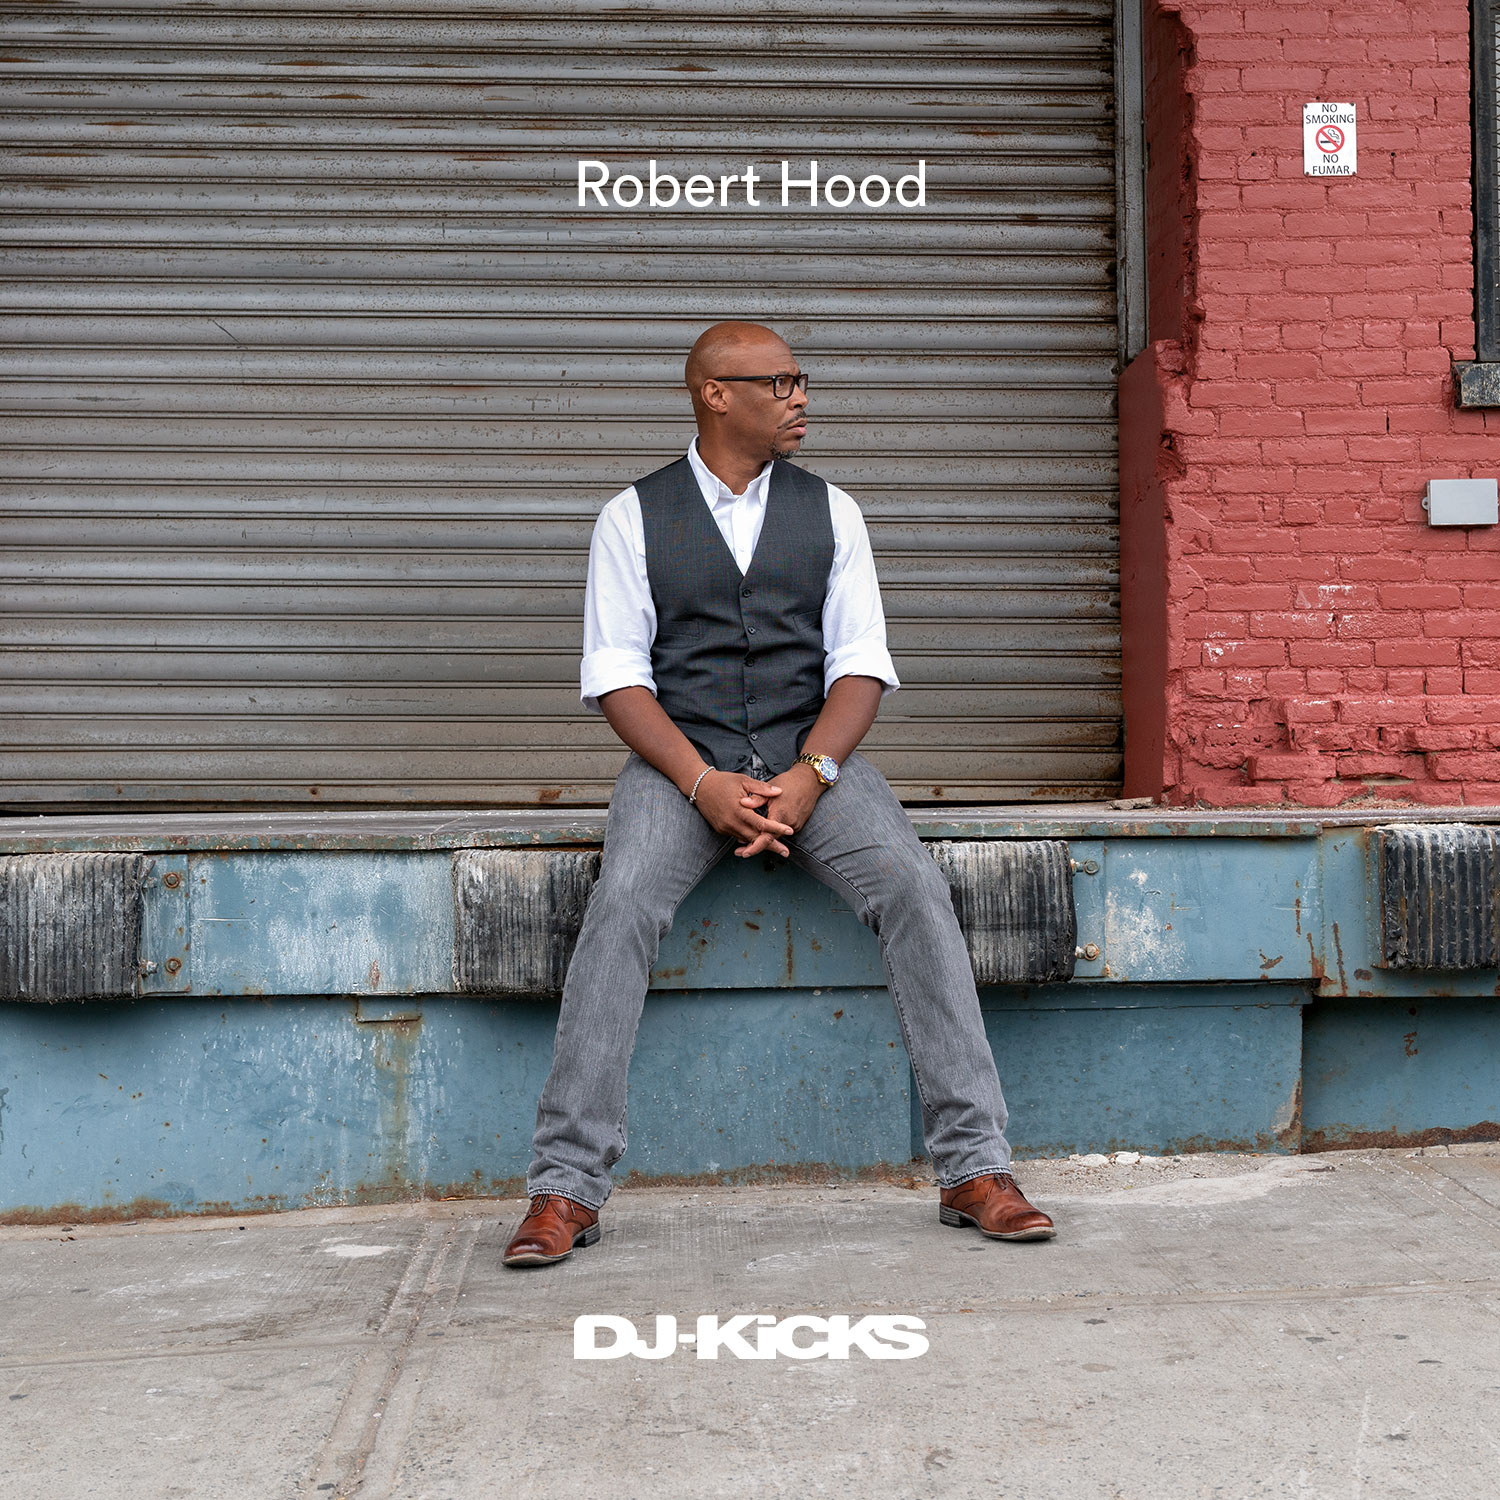 DJ-KICKS ROBERT HOOD